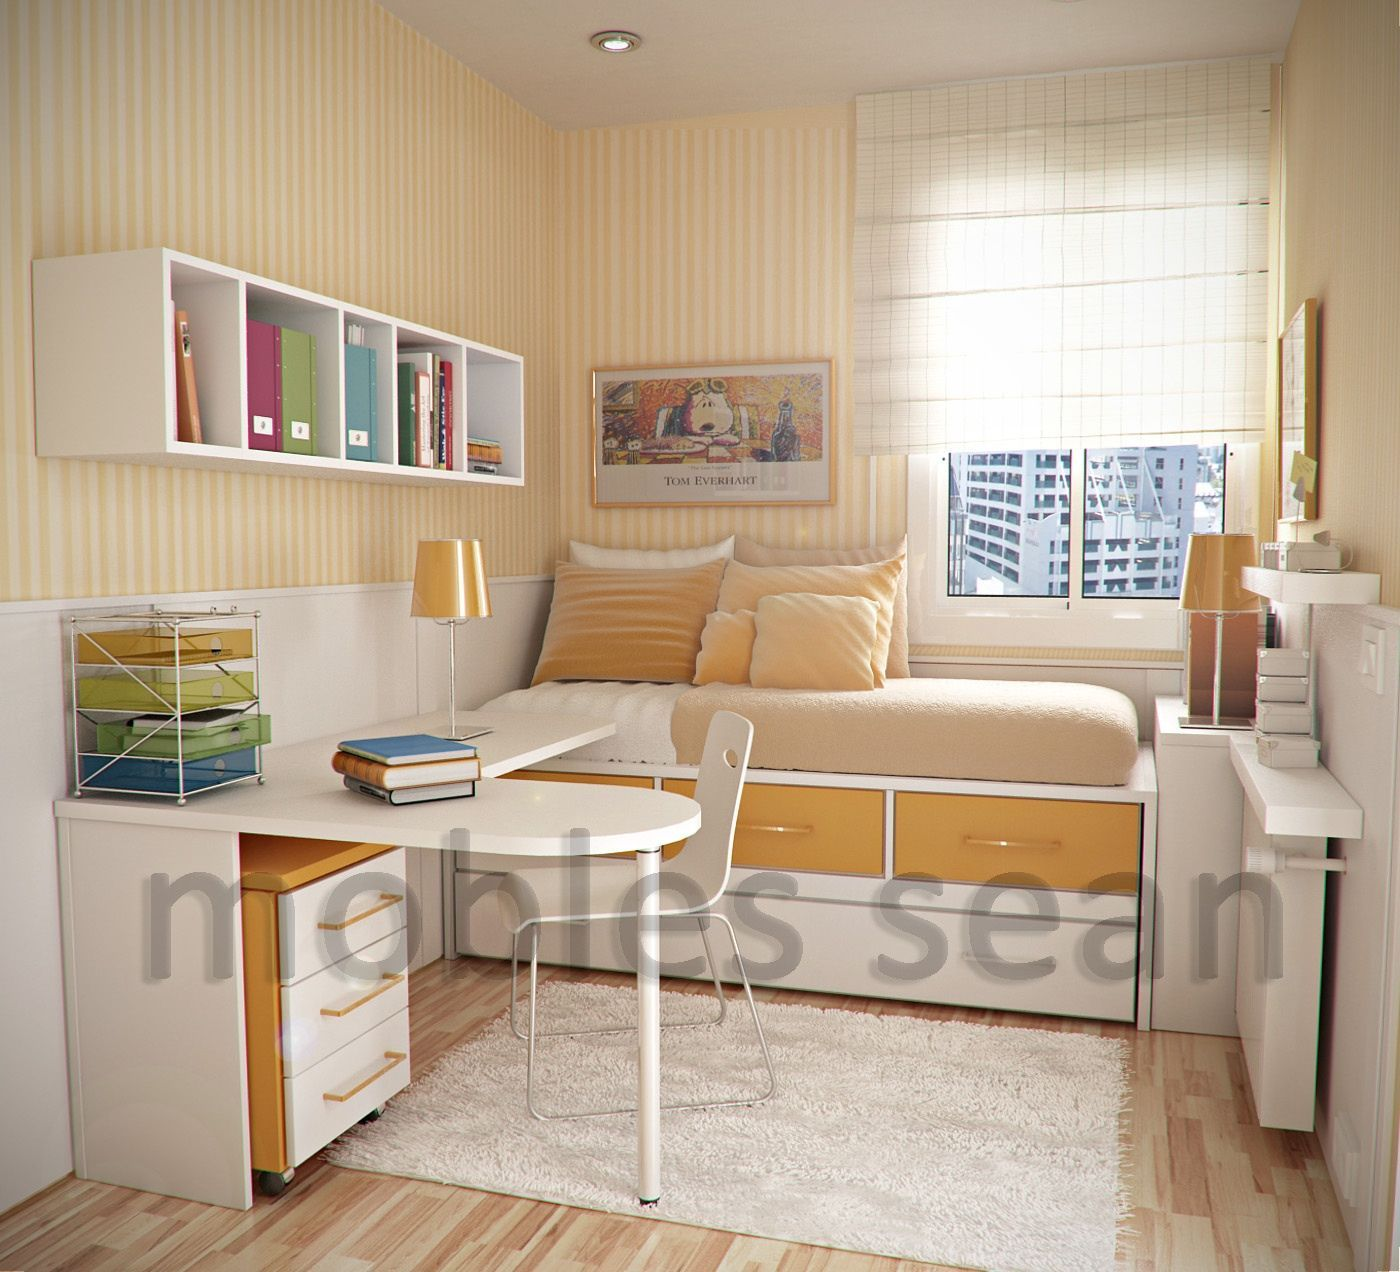 2018 small kids room ideas low budget bedroom decorating ideas rh in pinterest com